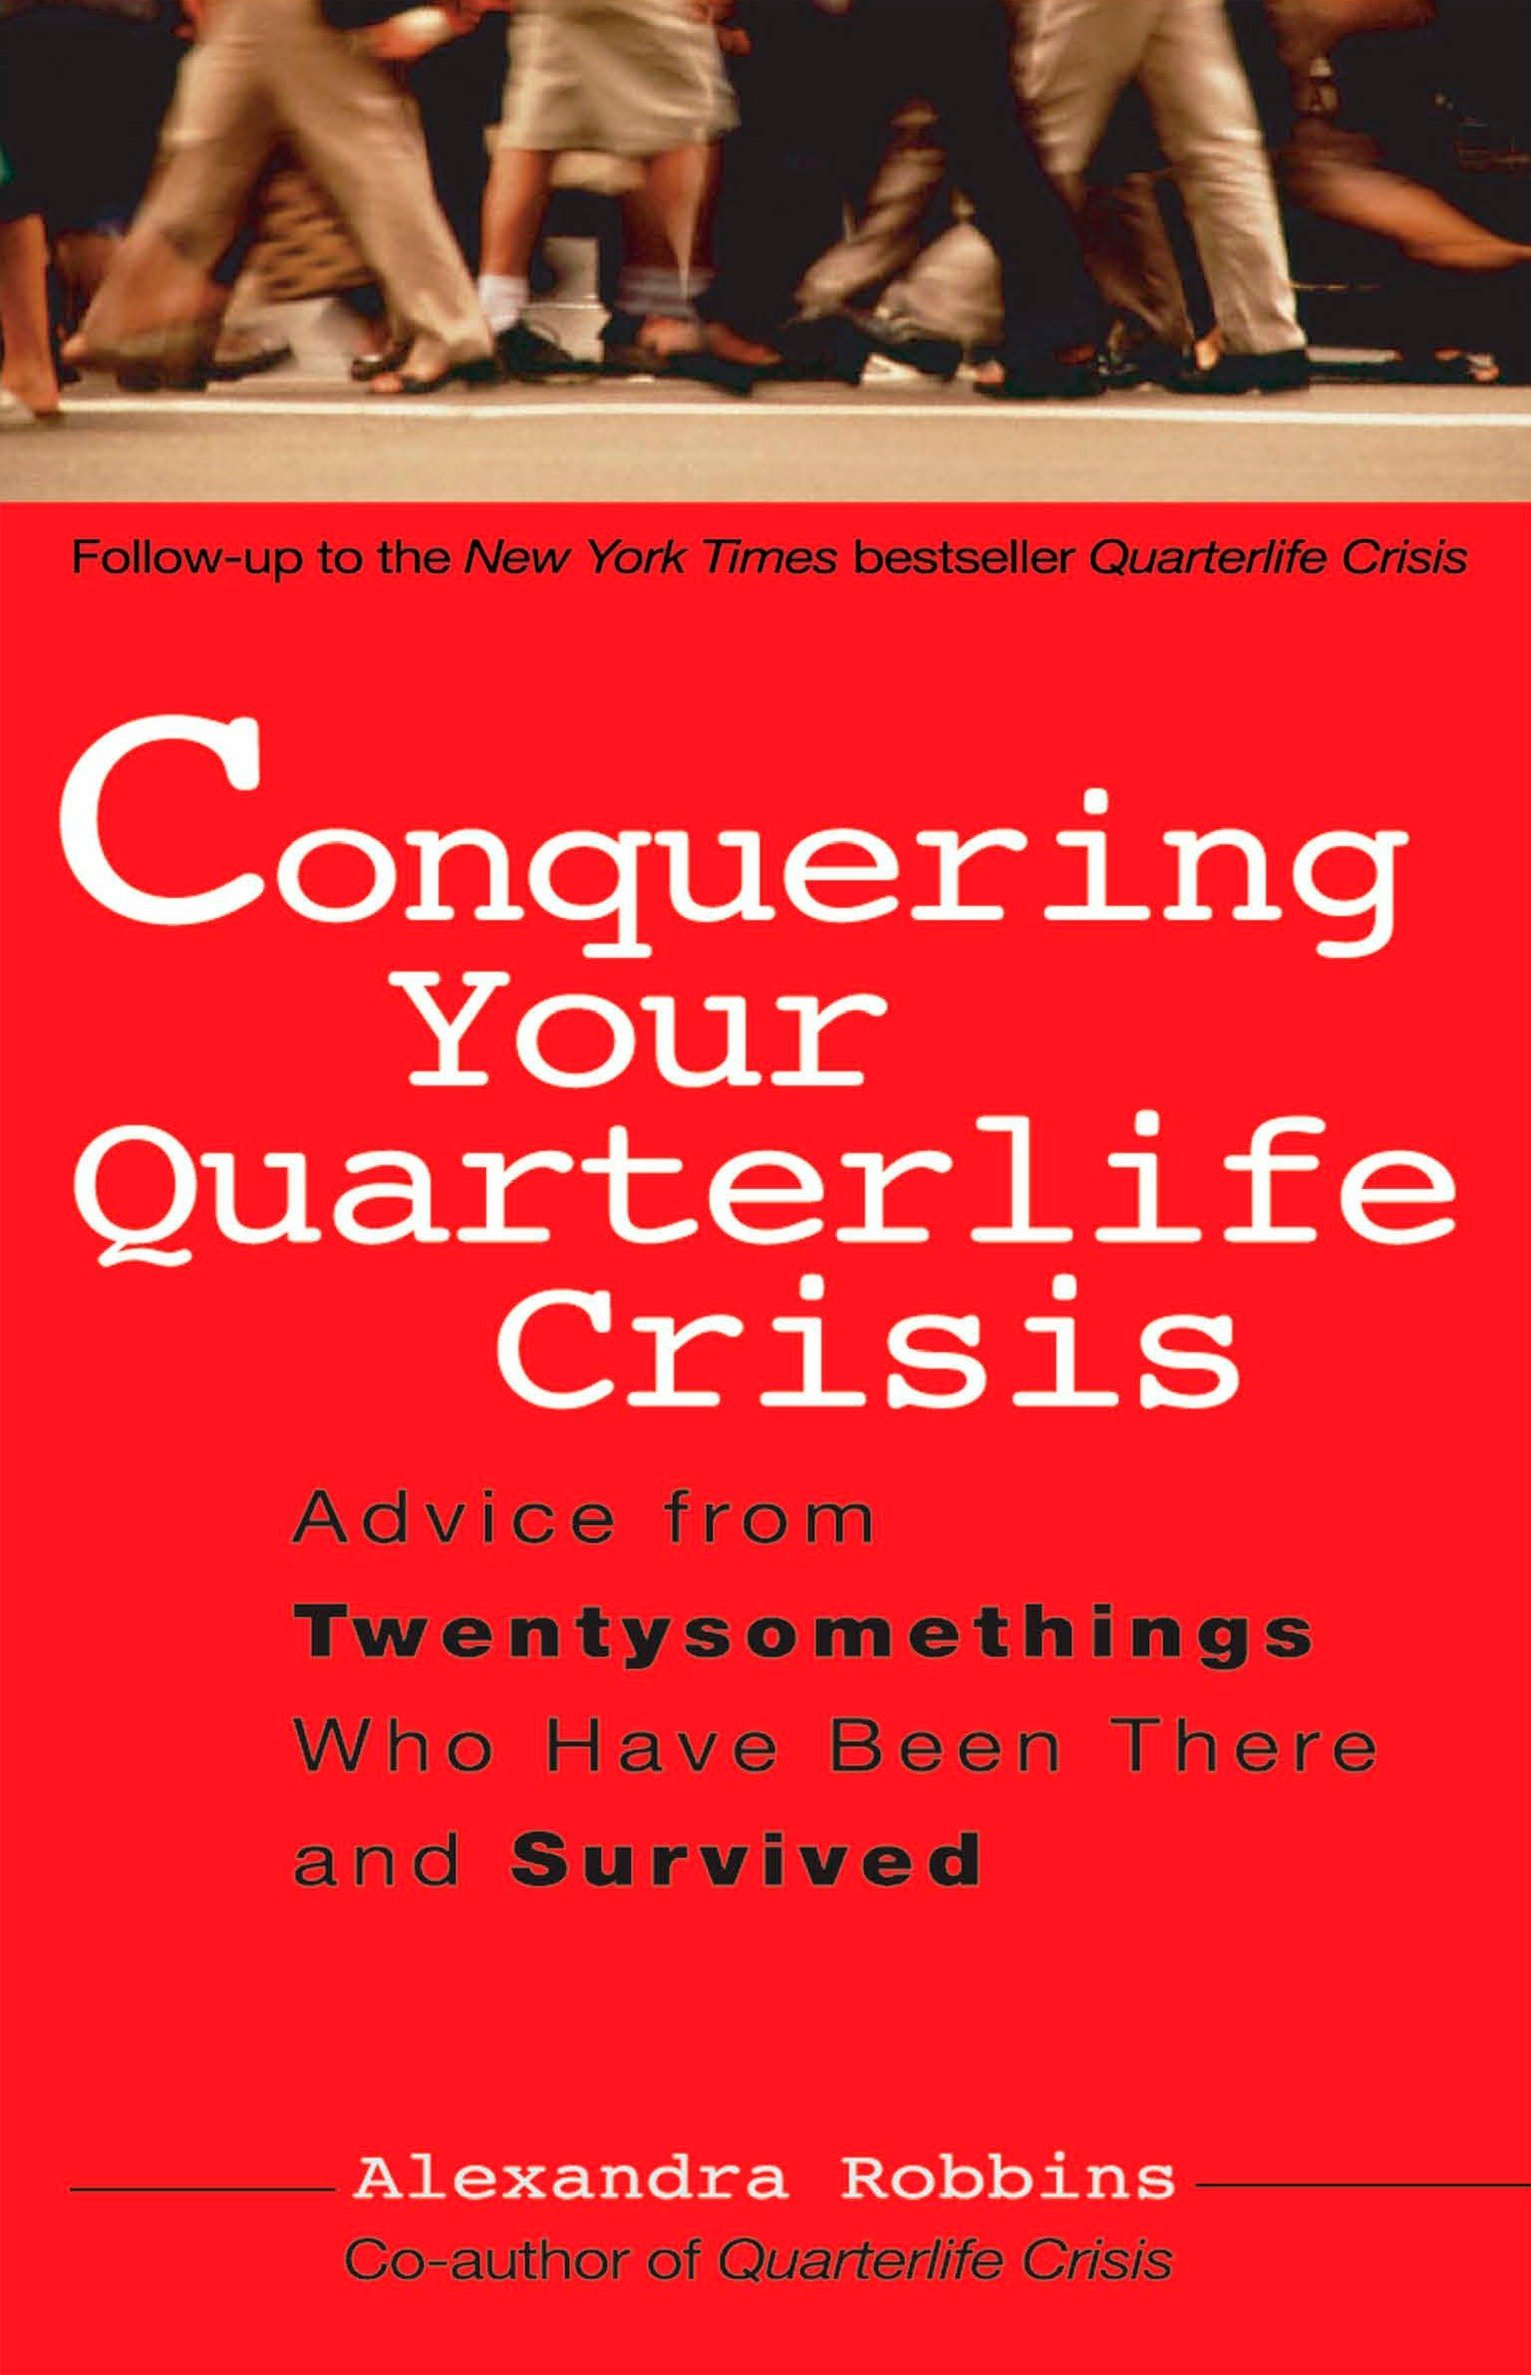 Conquering Your Quarterlife Crisis: Advice from Twentysomethings Who Have  Been There and Survived (Perigee Book): Alexandra Robbins: 9780399530388:  ...